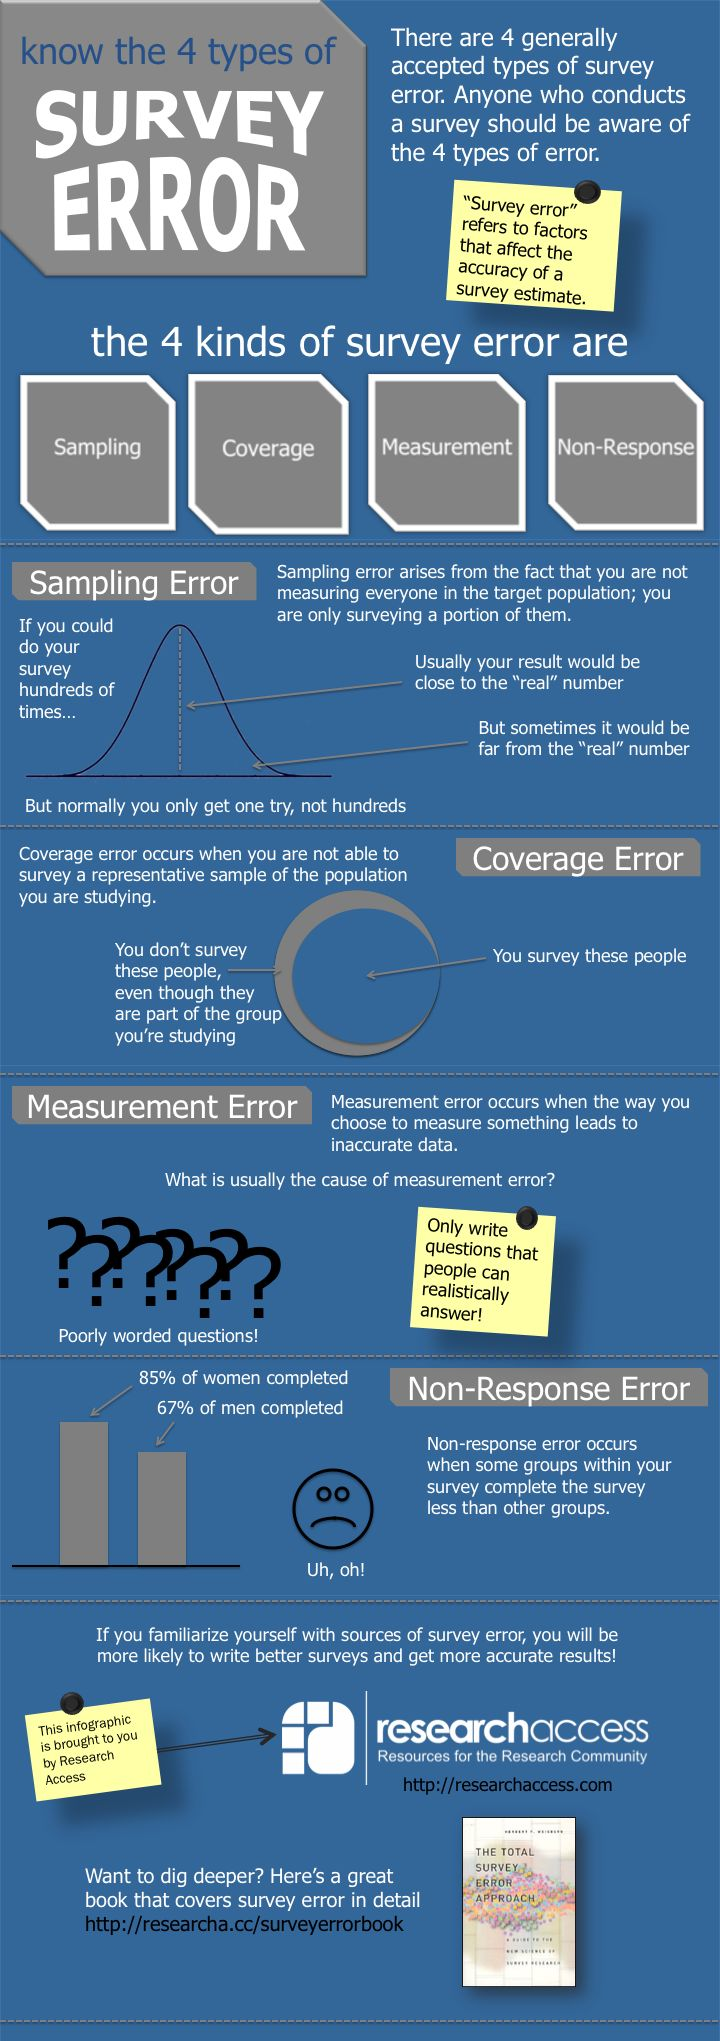 Know the 4 Types of Survey Error